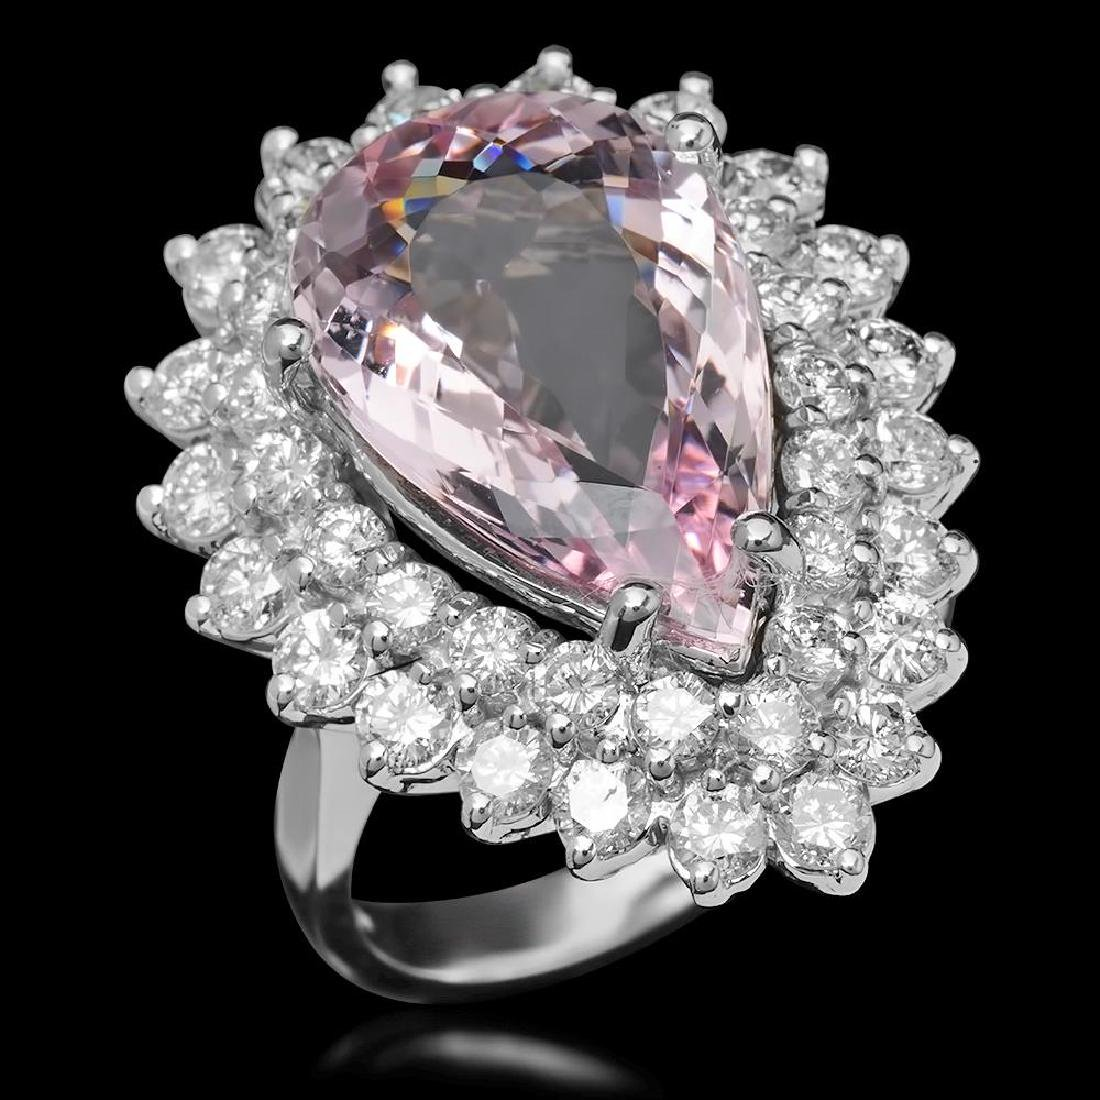 14K Gold 7.52ct Morganite 2.70ct Diamond Ring